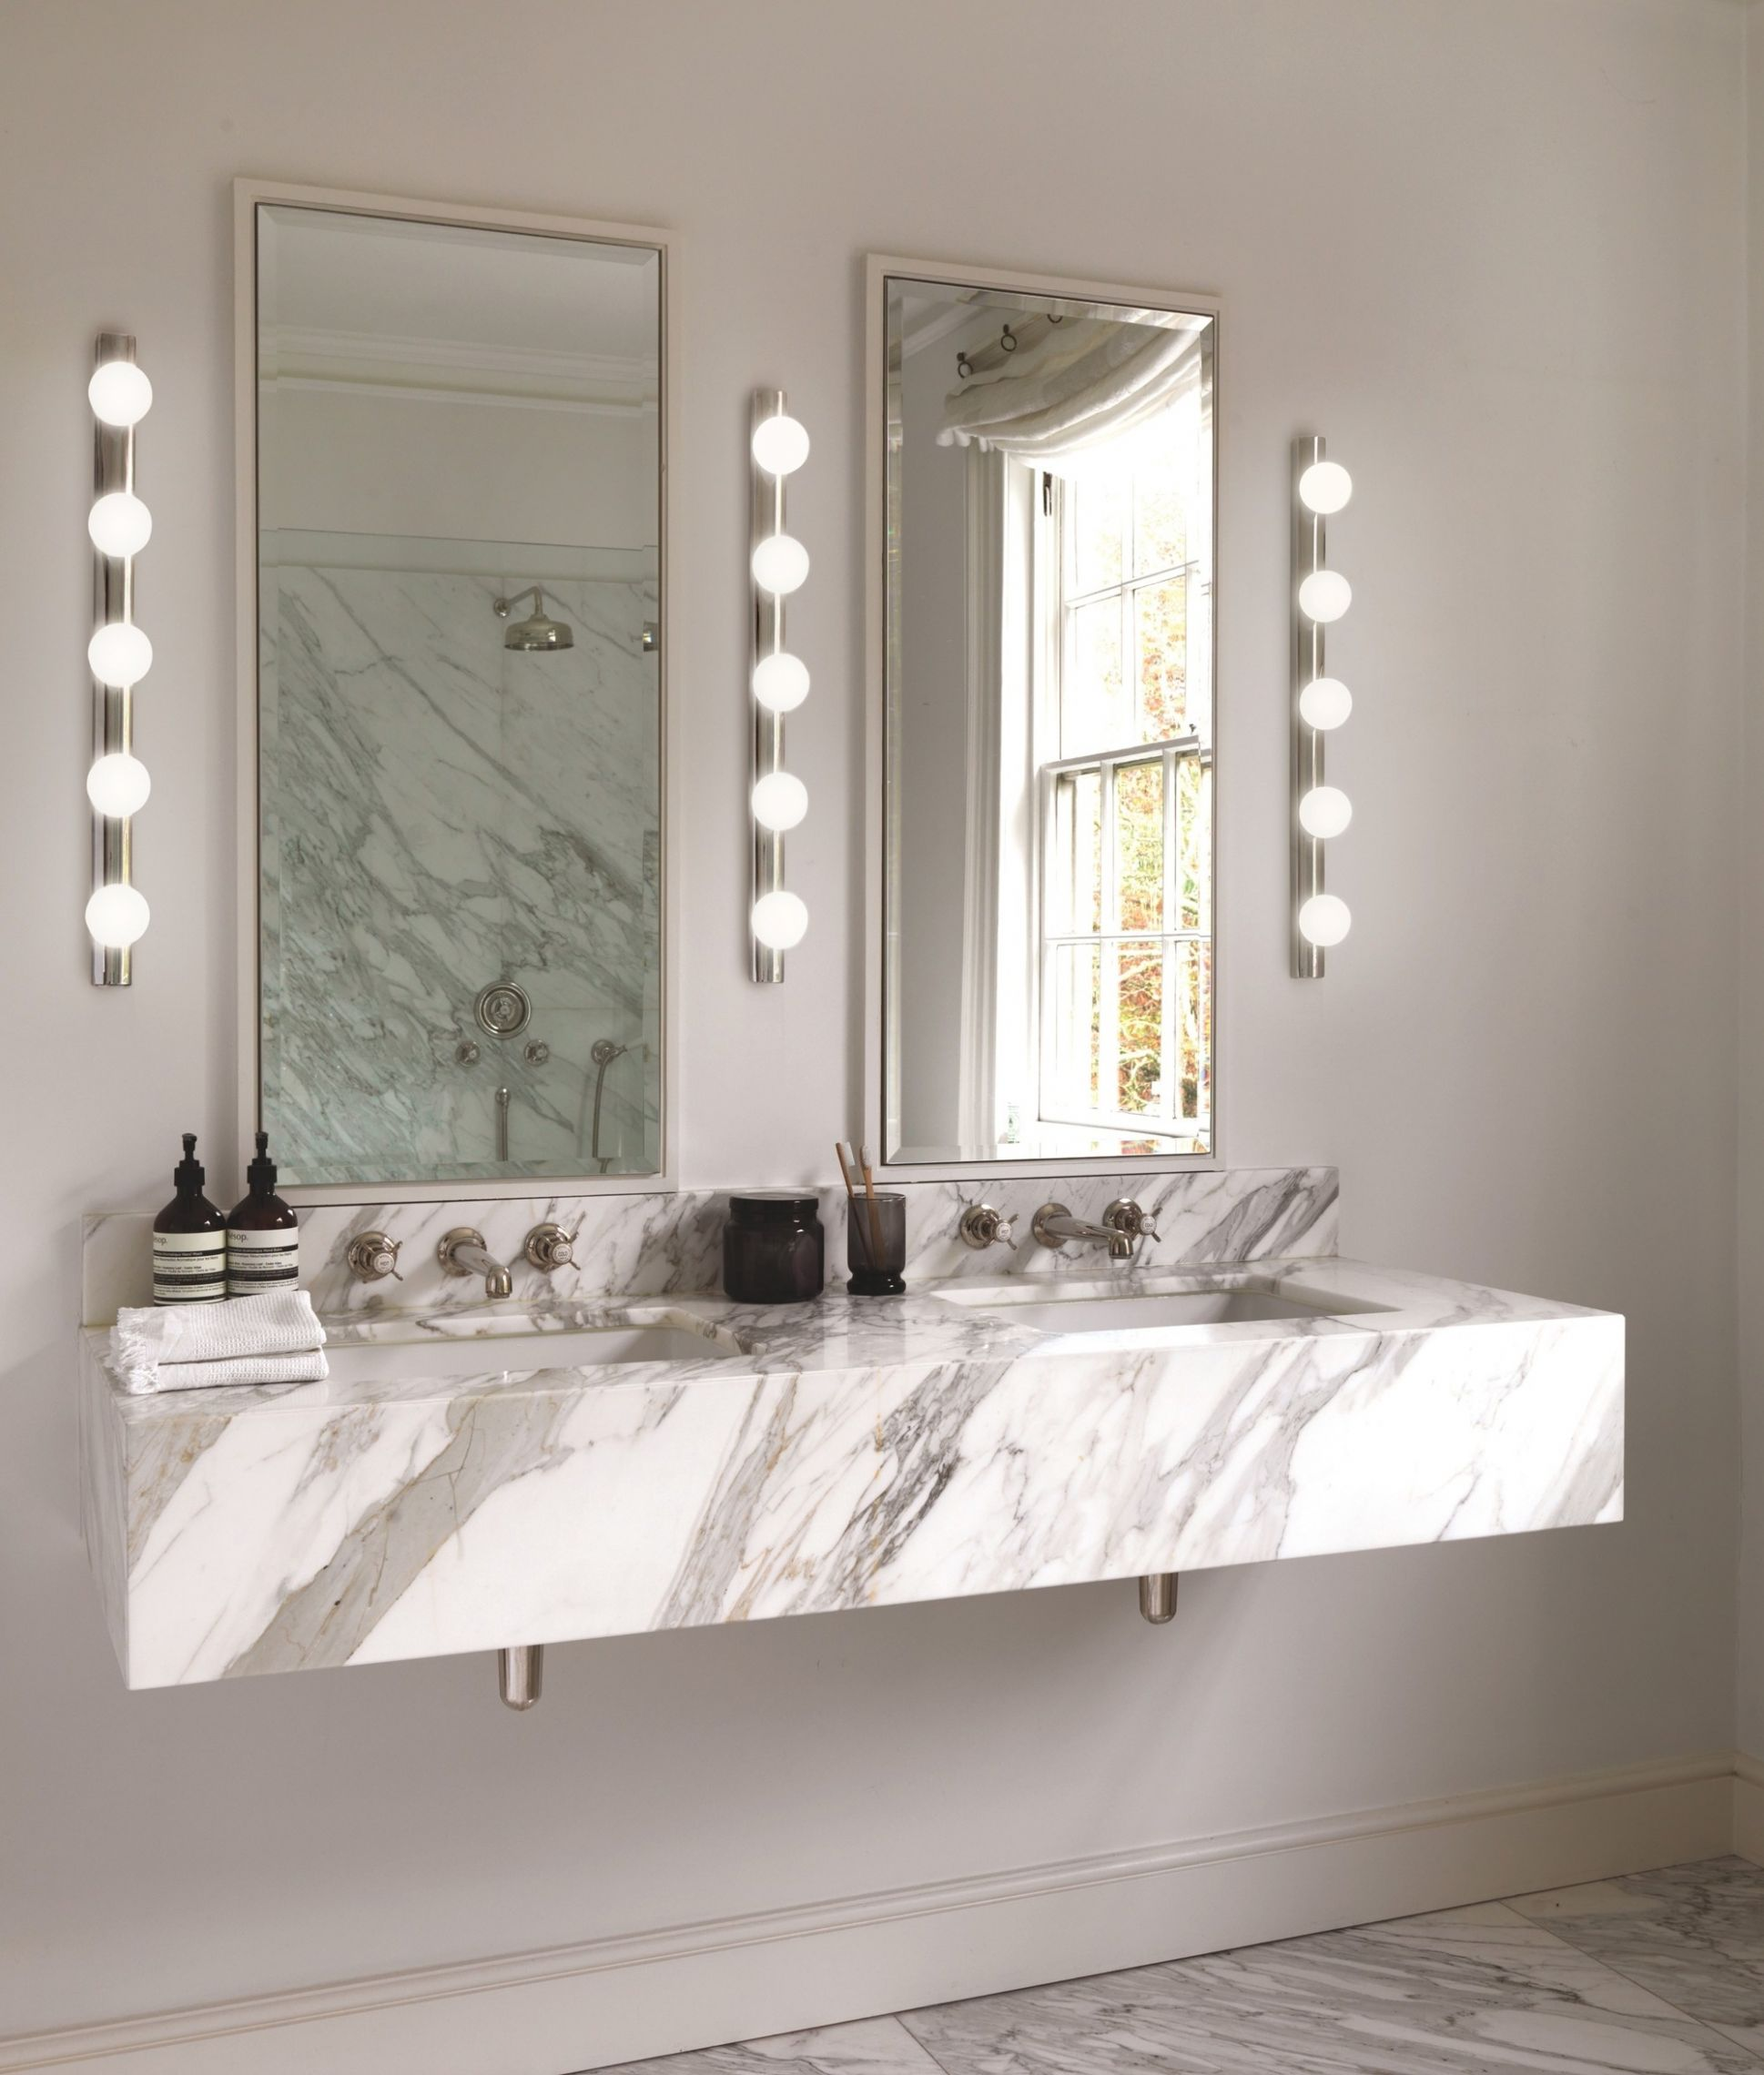 Dressing Room Mirror Light - Opal Glass Globes - makeup room lights